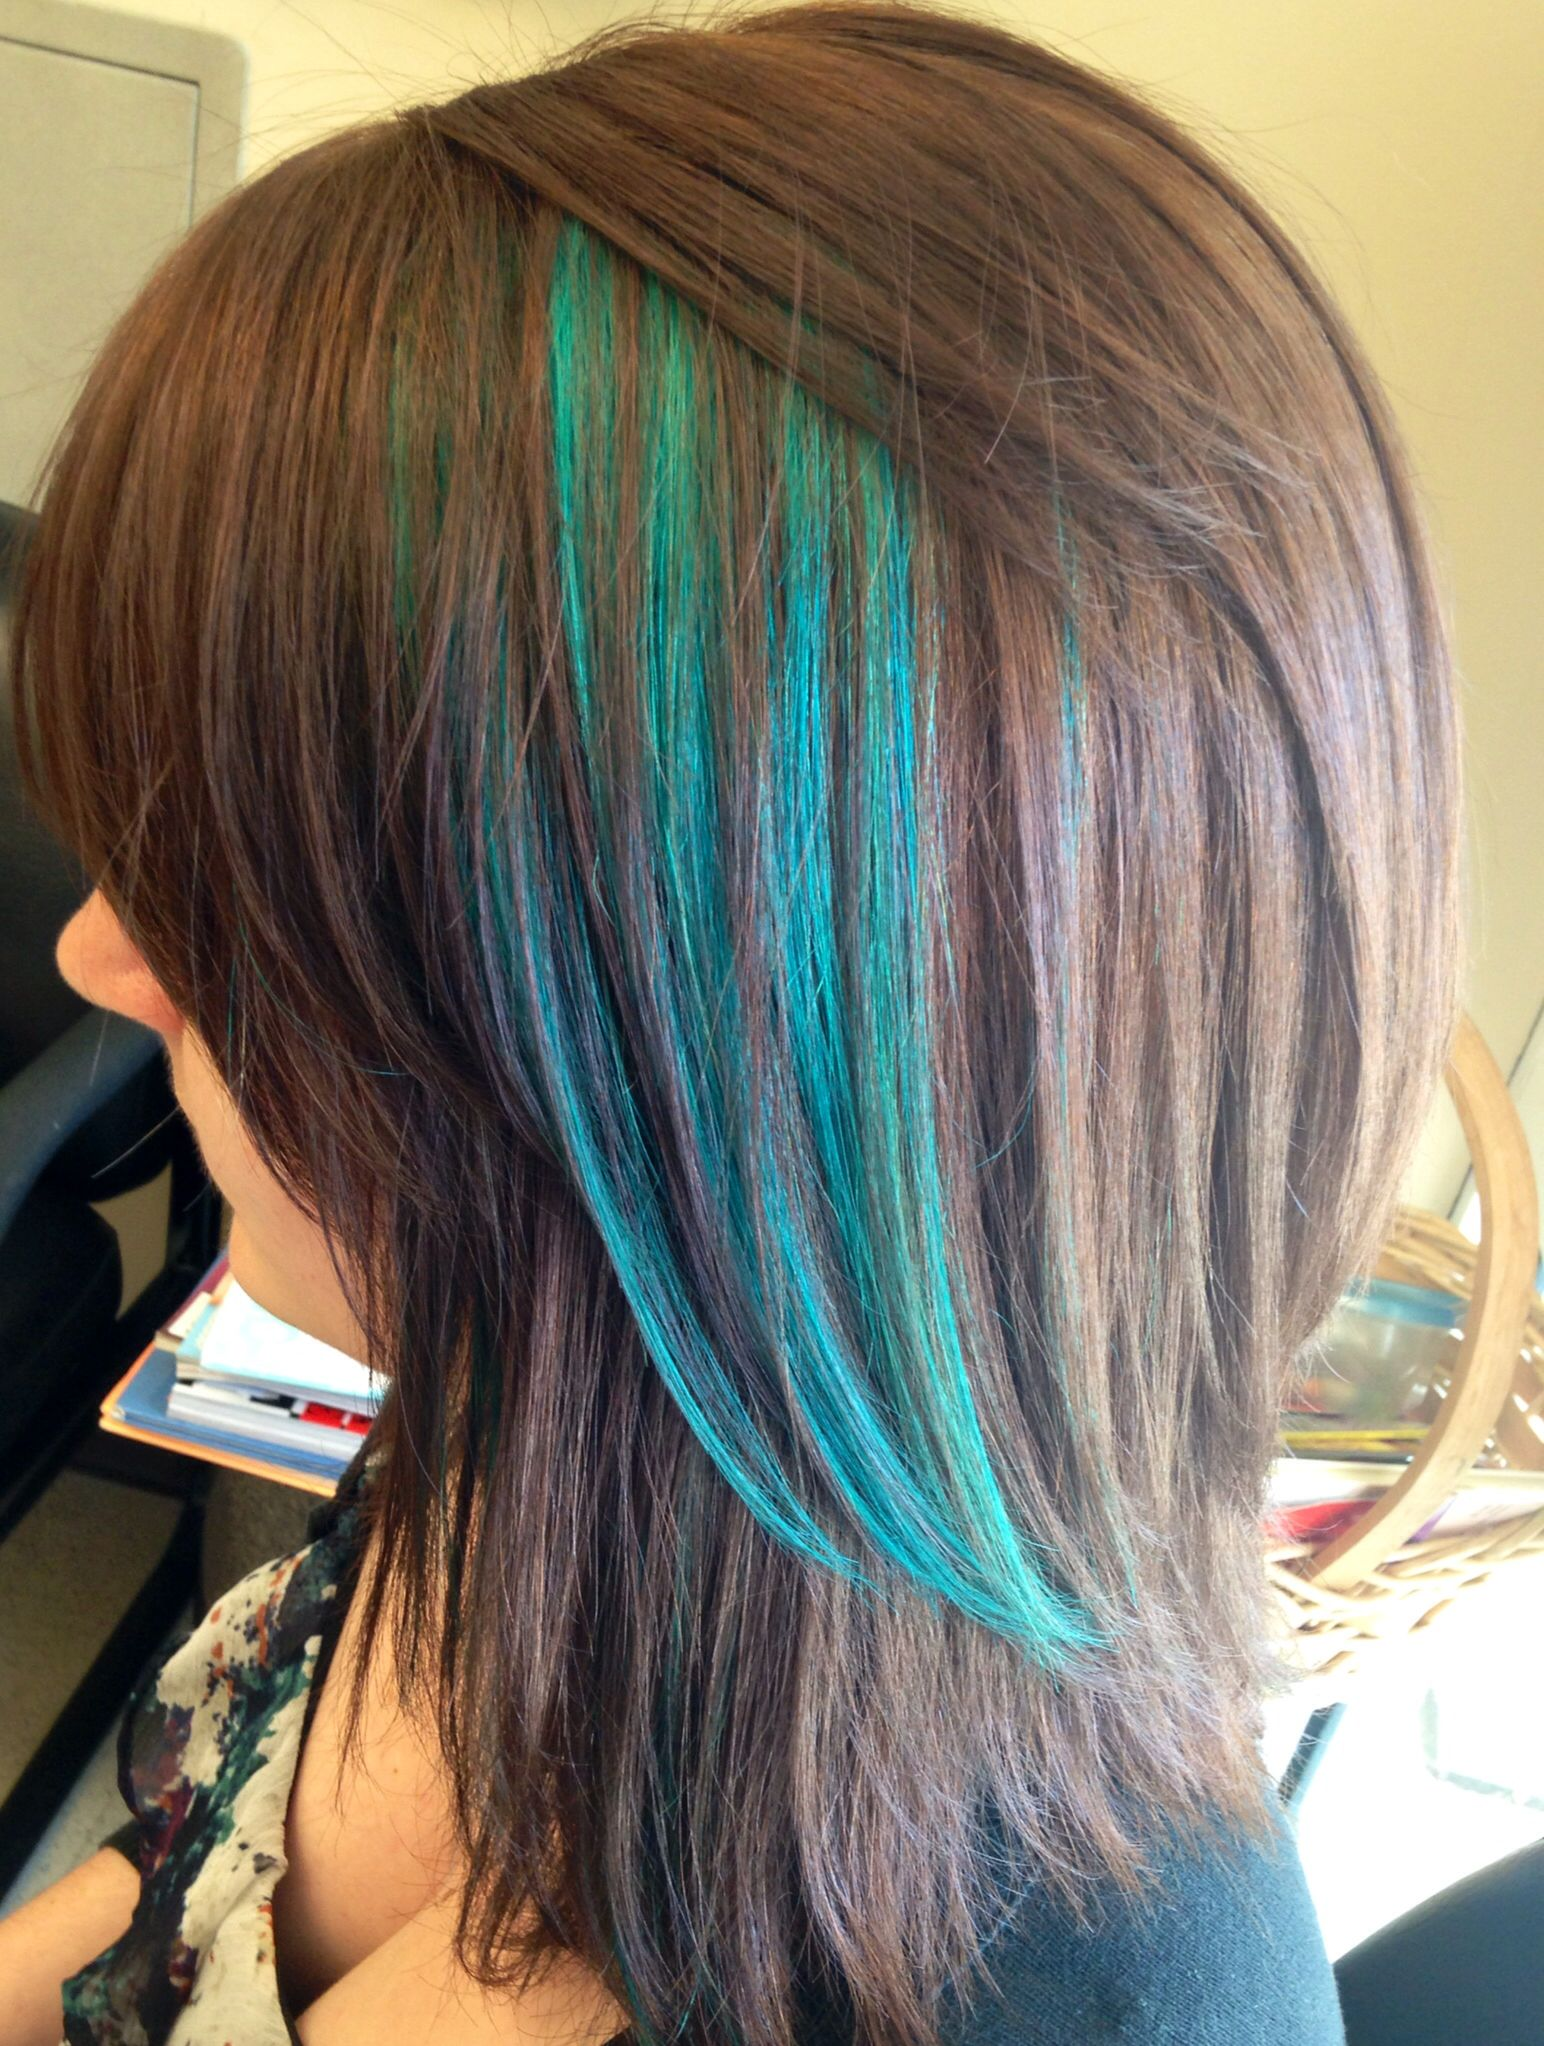 Pin By Lindsey Weatherly On Hair Peekaboo Hair Kids Hair Color Blonde Hair With Highlights